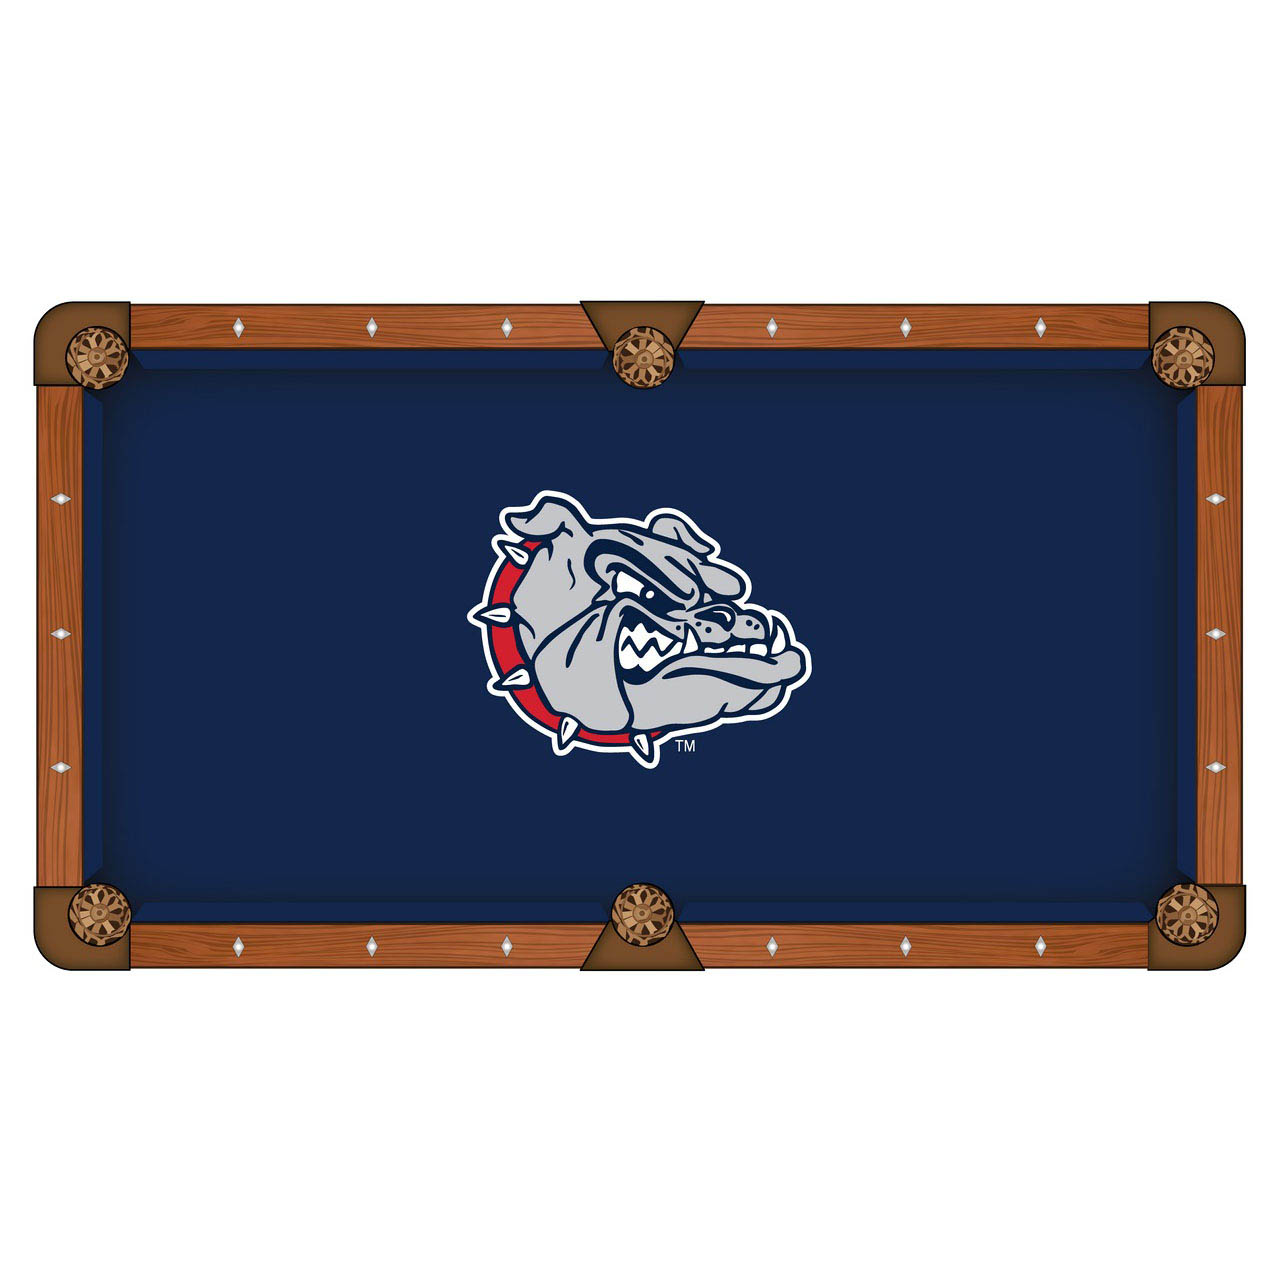 One of a kind Gonzaga Pool Table Cloth Product Photo